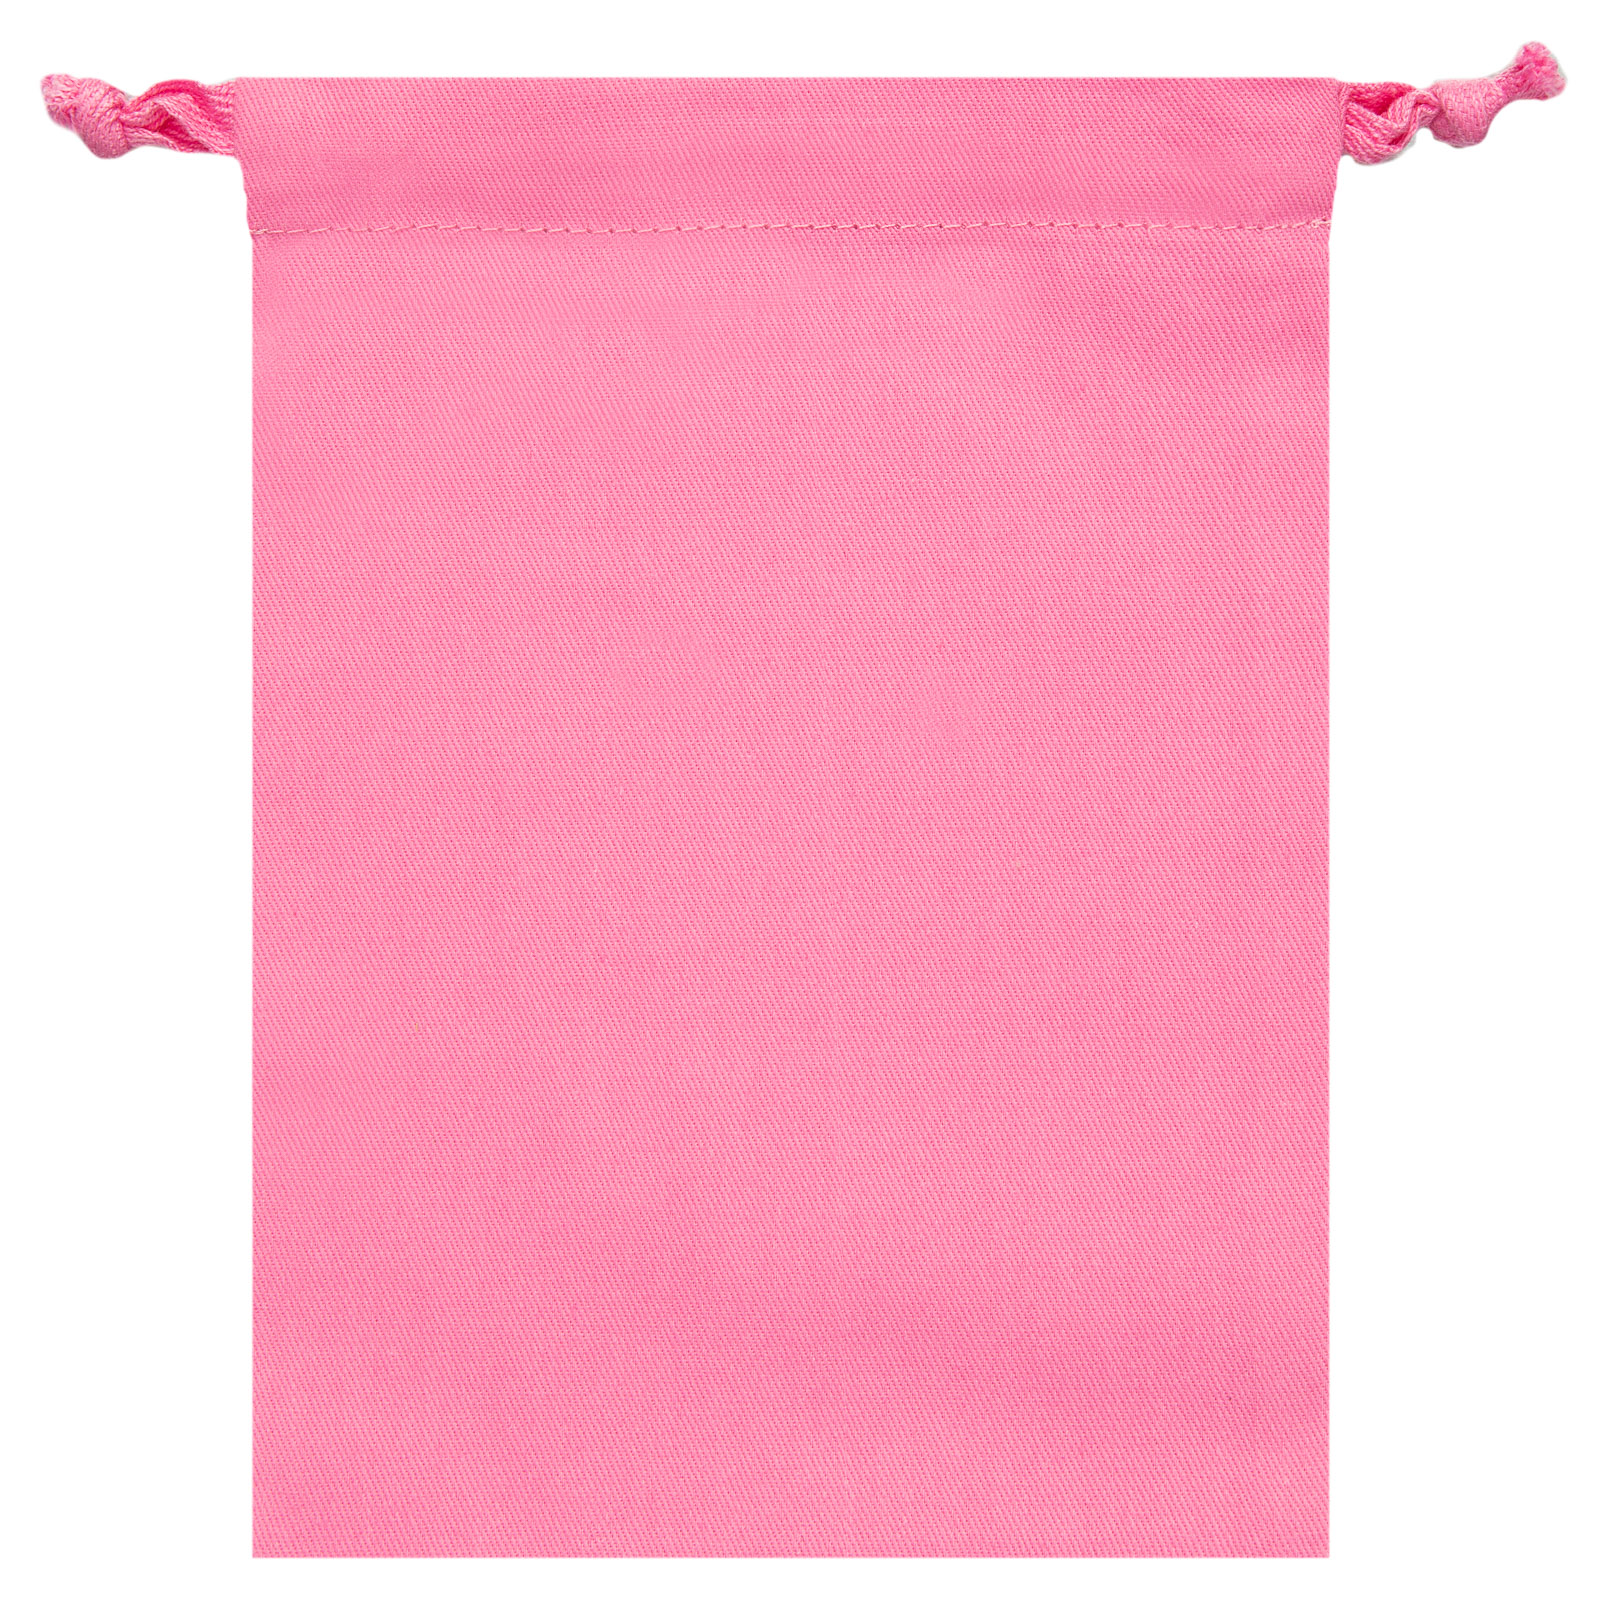 """Signature Napkins Face Covering Storage Pouch – 8"""" x 6"""" Drawstring Bag - 100% Cotton – 10 x Pack - Rose"""